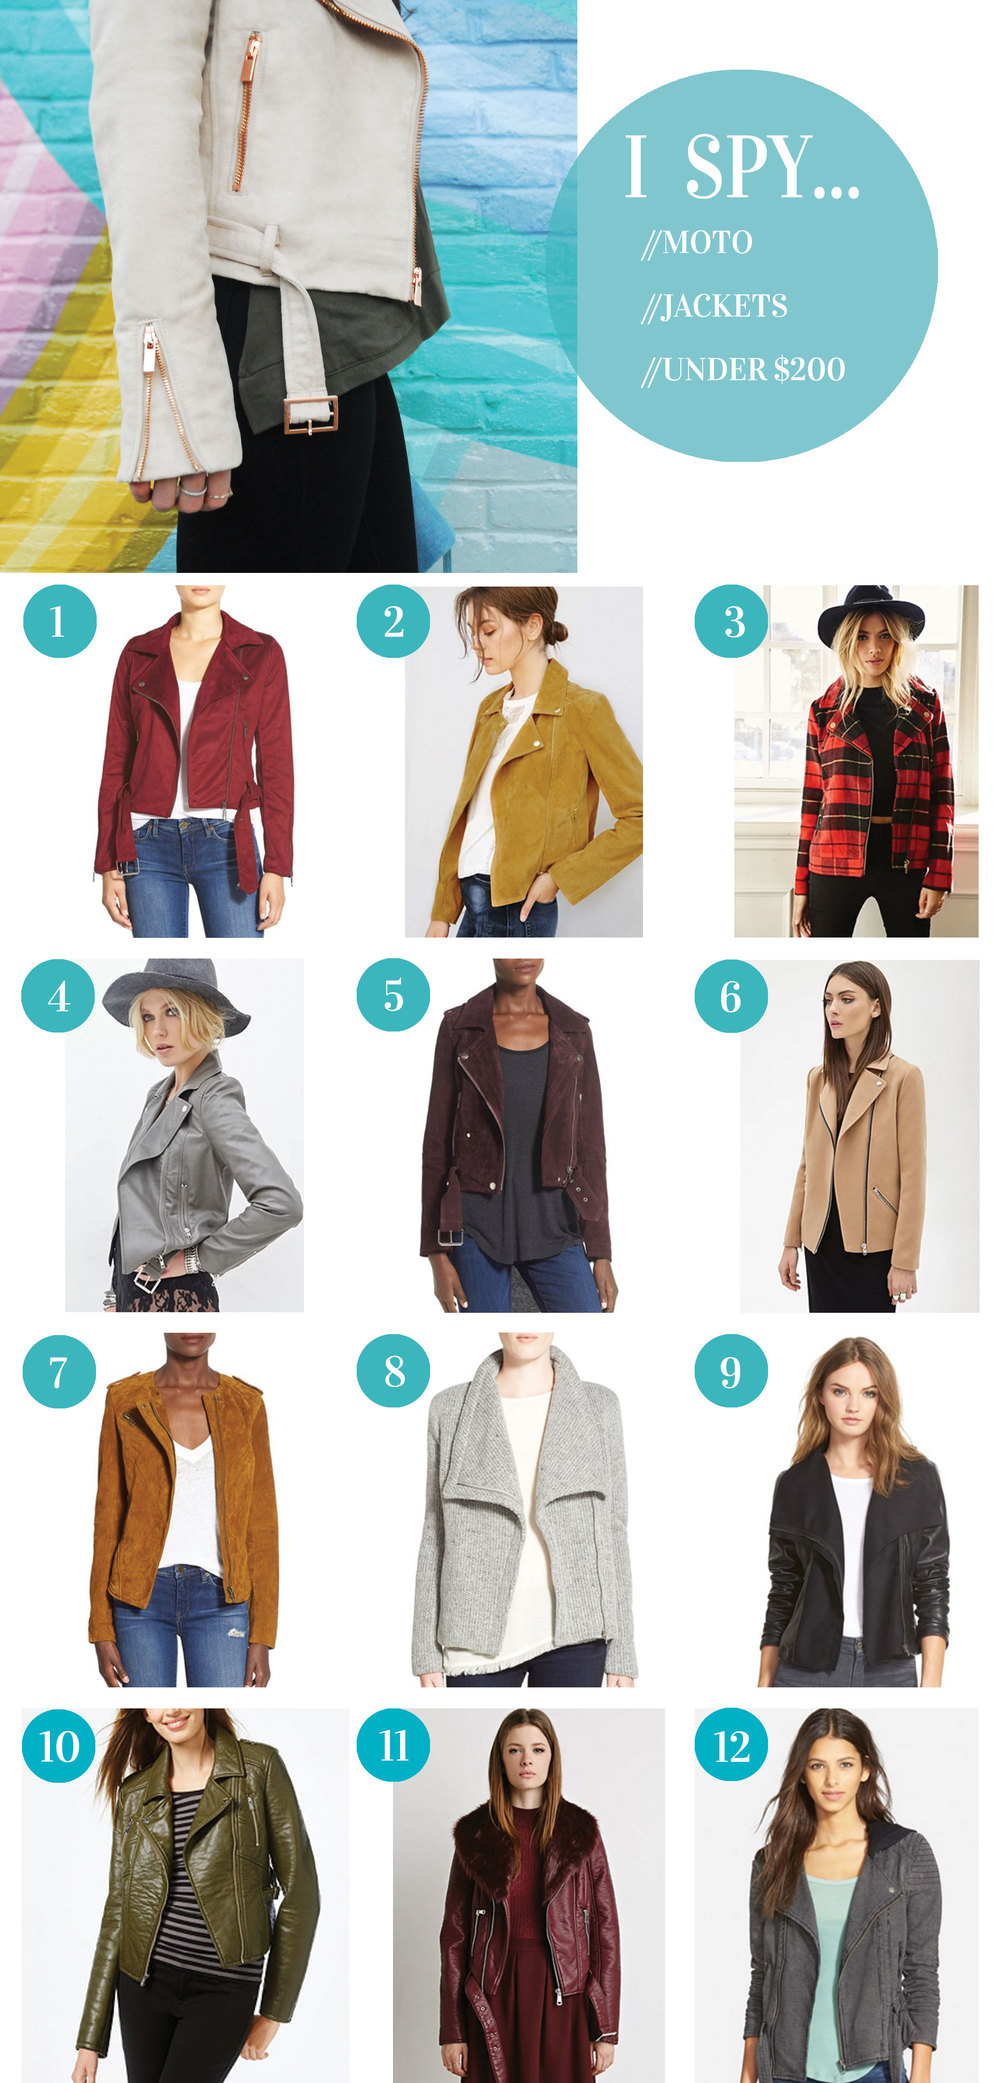 Motorcycle Jackets Under $200, Inexpensive Moto Jackets, Gift Guide For Her